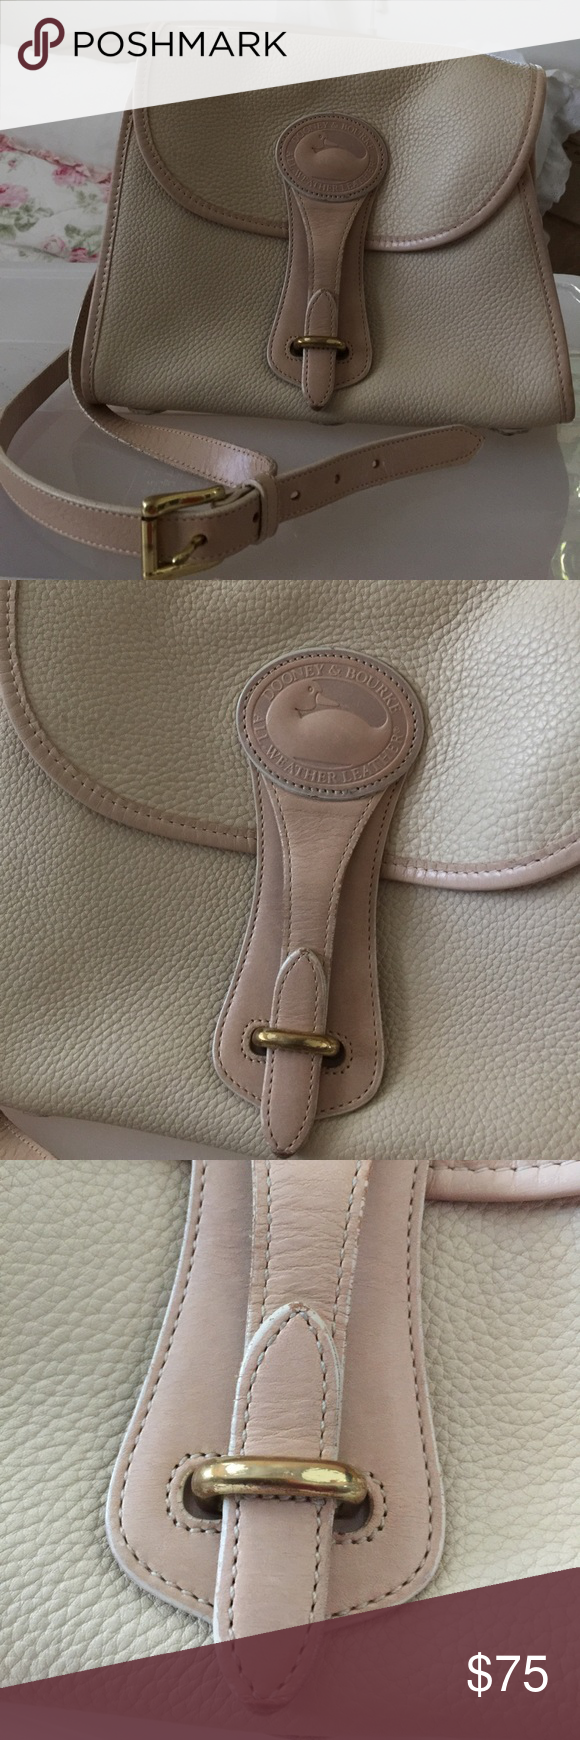 Unique Vintage Dooney and Bourke taupe bag Dooney & Bourke Essex pocketbook  in all weather leather, taupe with tan accents and strap.Features two open and one zippered pocket inside the main body.Solid Brass Hardware. Adjustable Shoulder Strap.Overall in great shape, can be worn as a shoulder bag or a cross body bag. signs of use, D&B label inside (see photo). Also there are dark pen marks inside the bag (see photo). Dooney & Bourke Bags Crossbody Bags